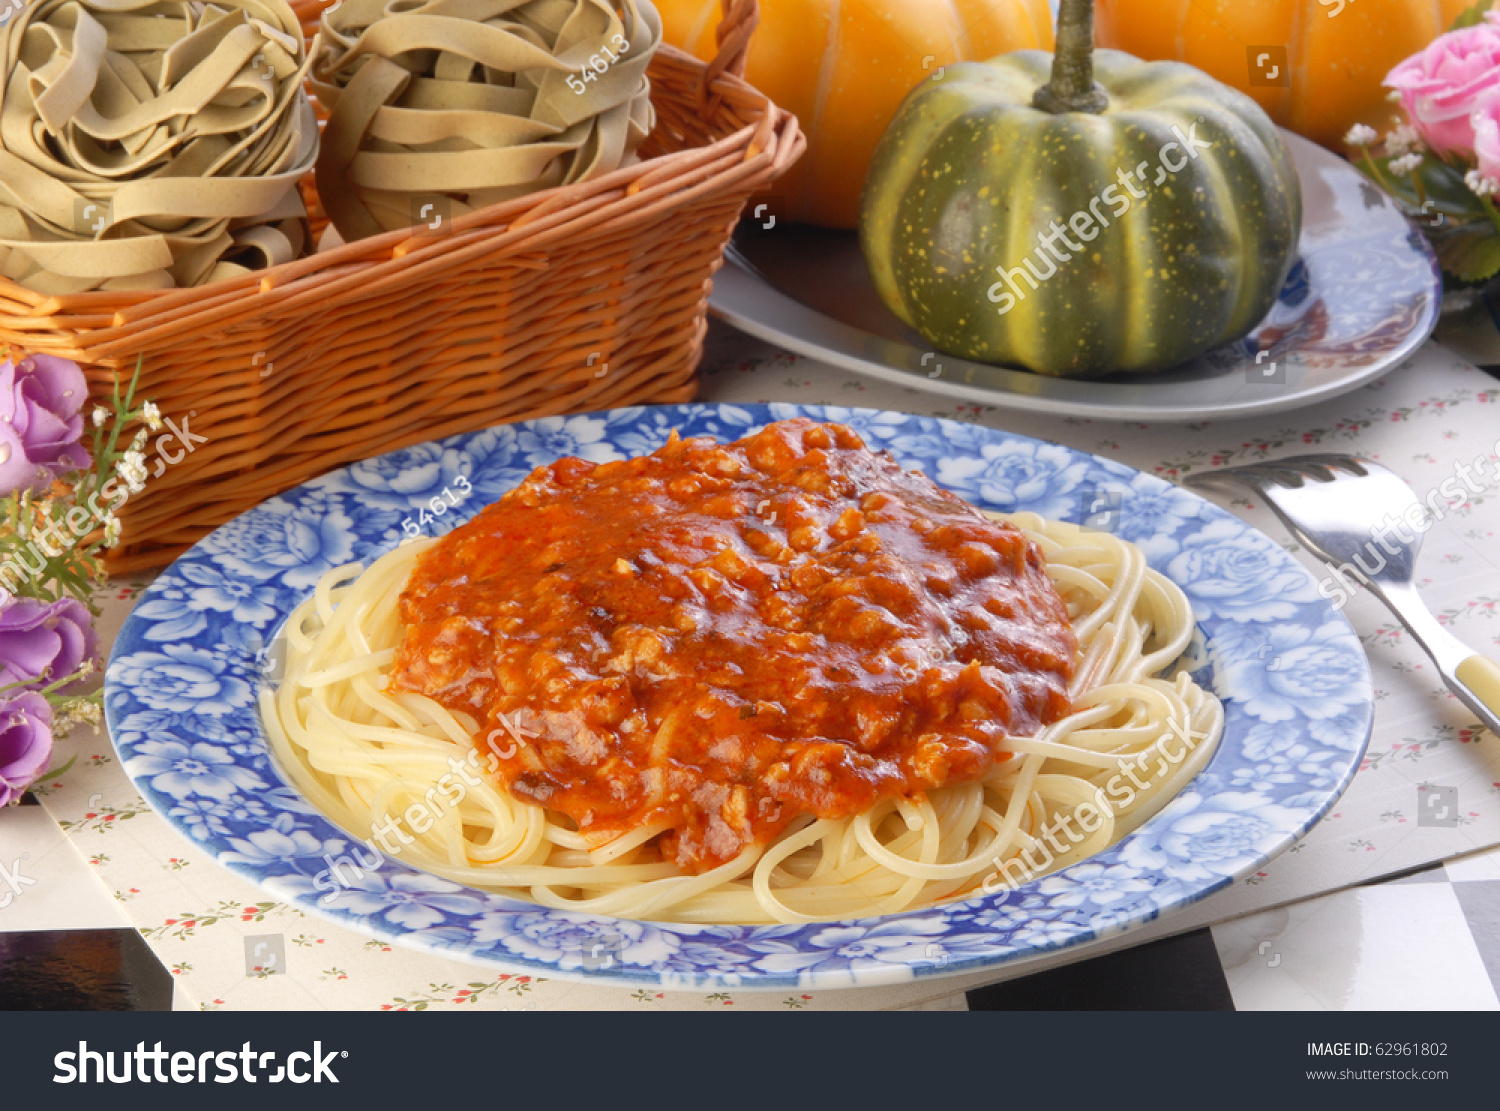 Spaghetti With A Rich Meat Sauce Stock Photo 62961802 : Shutterstock